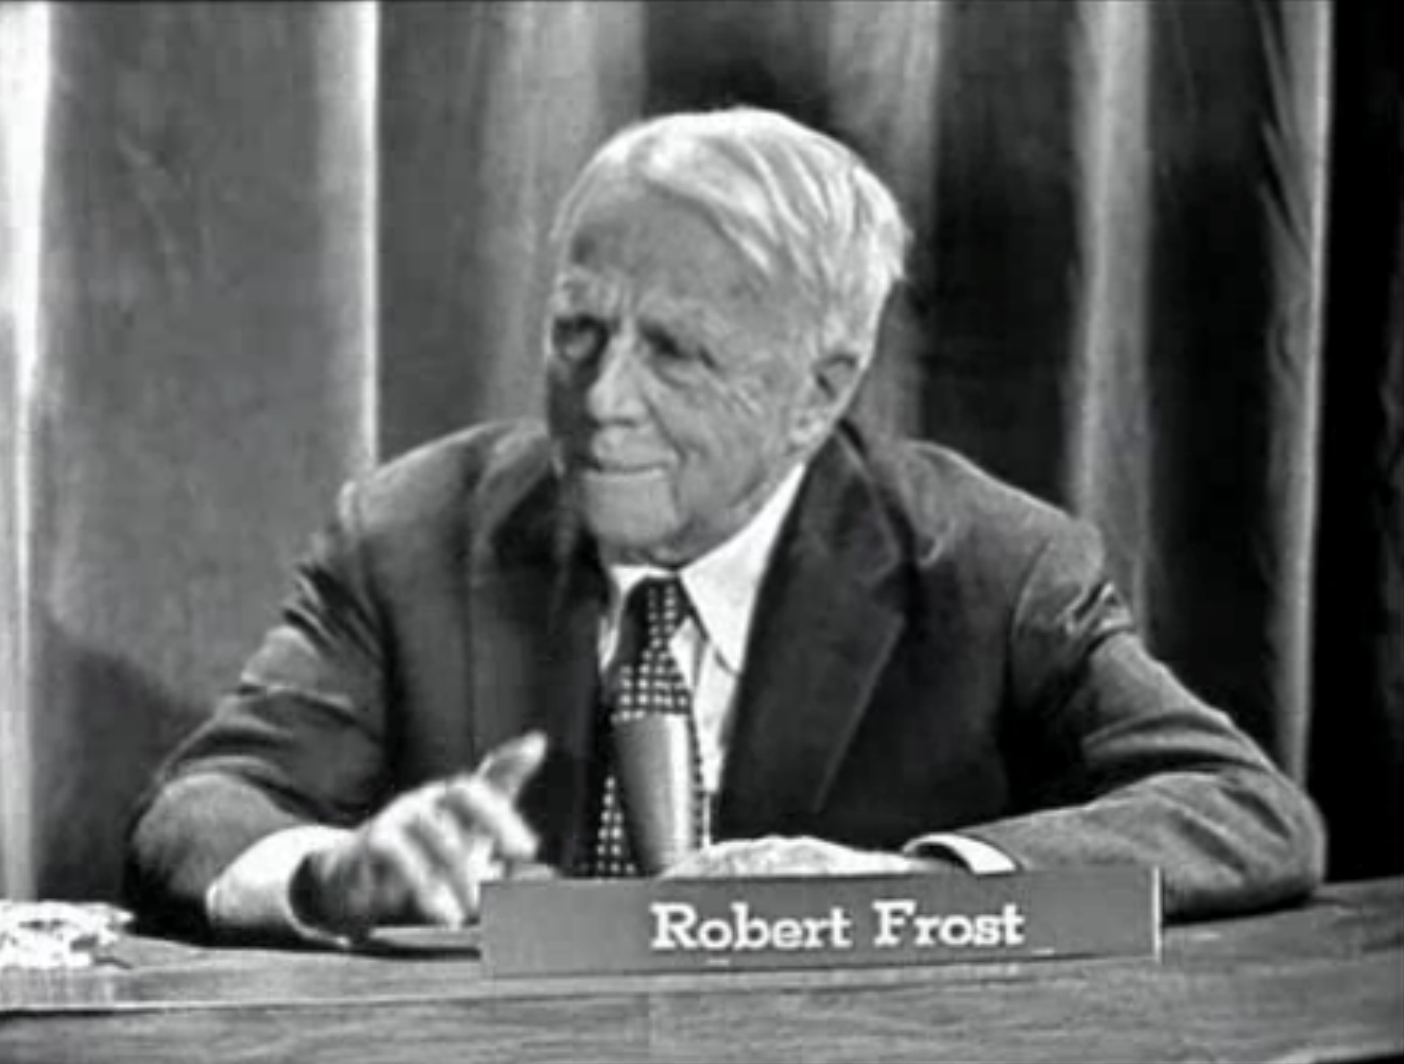 essays on design by robert frost